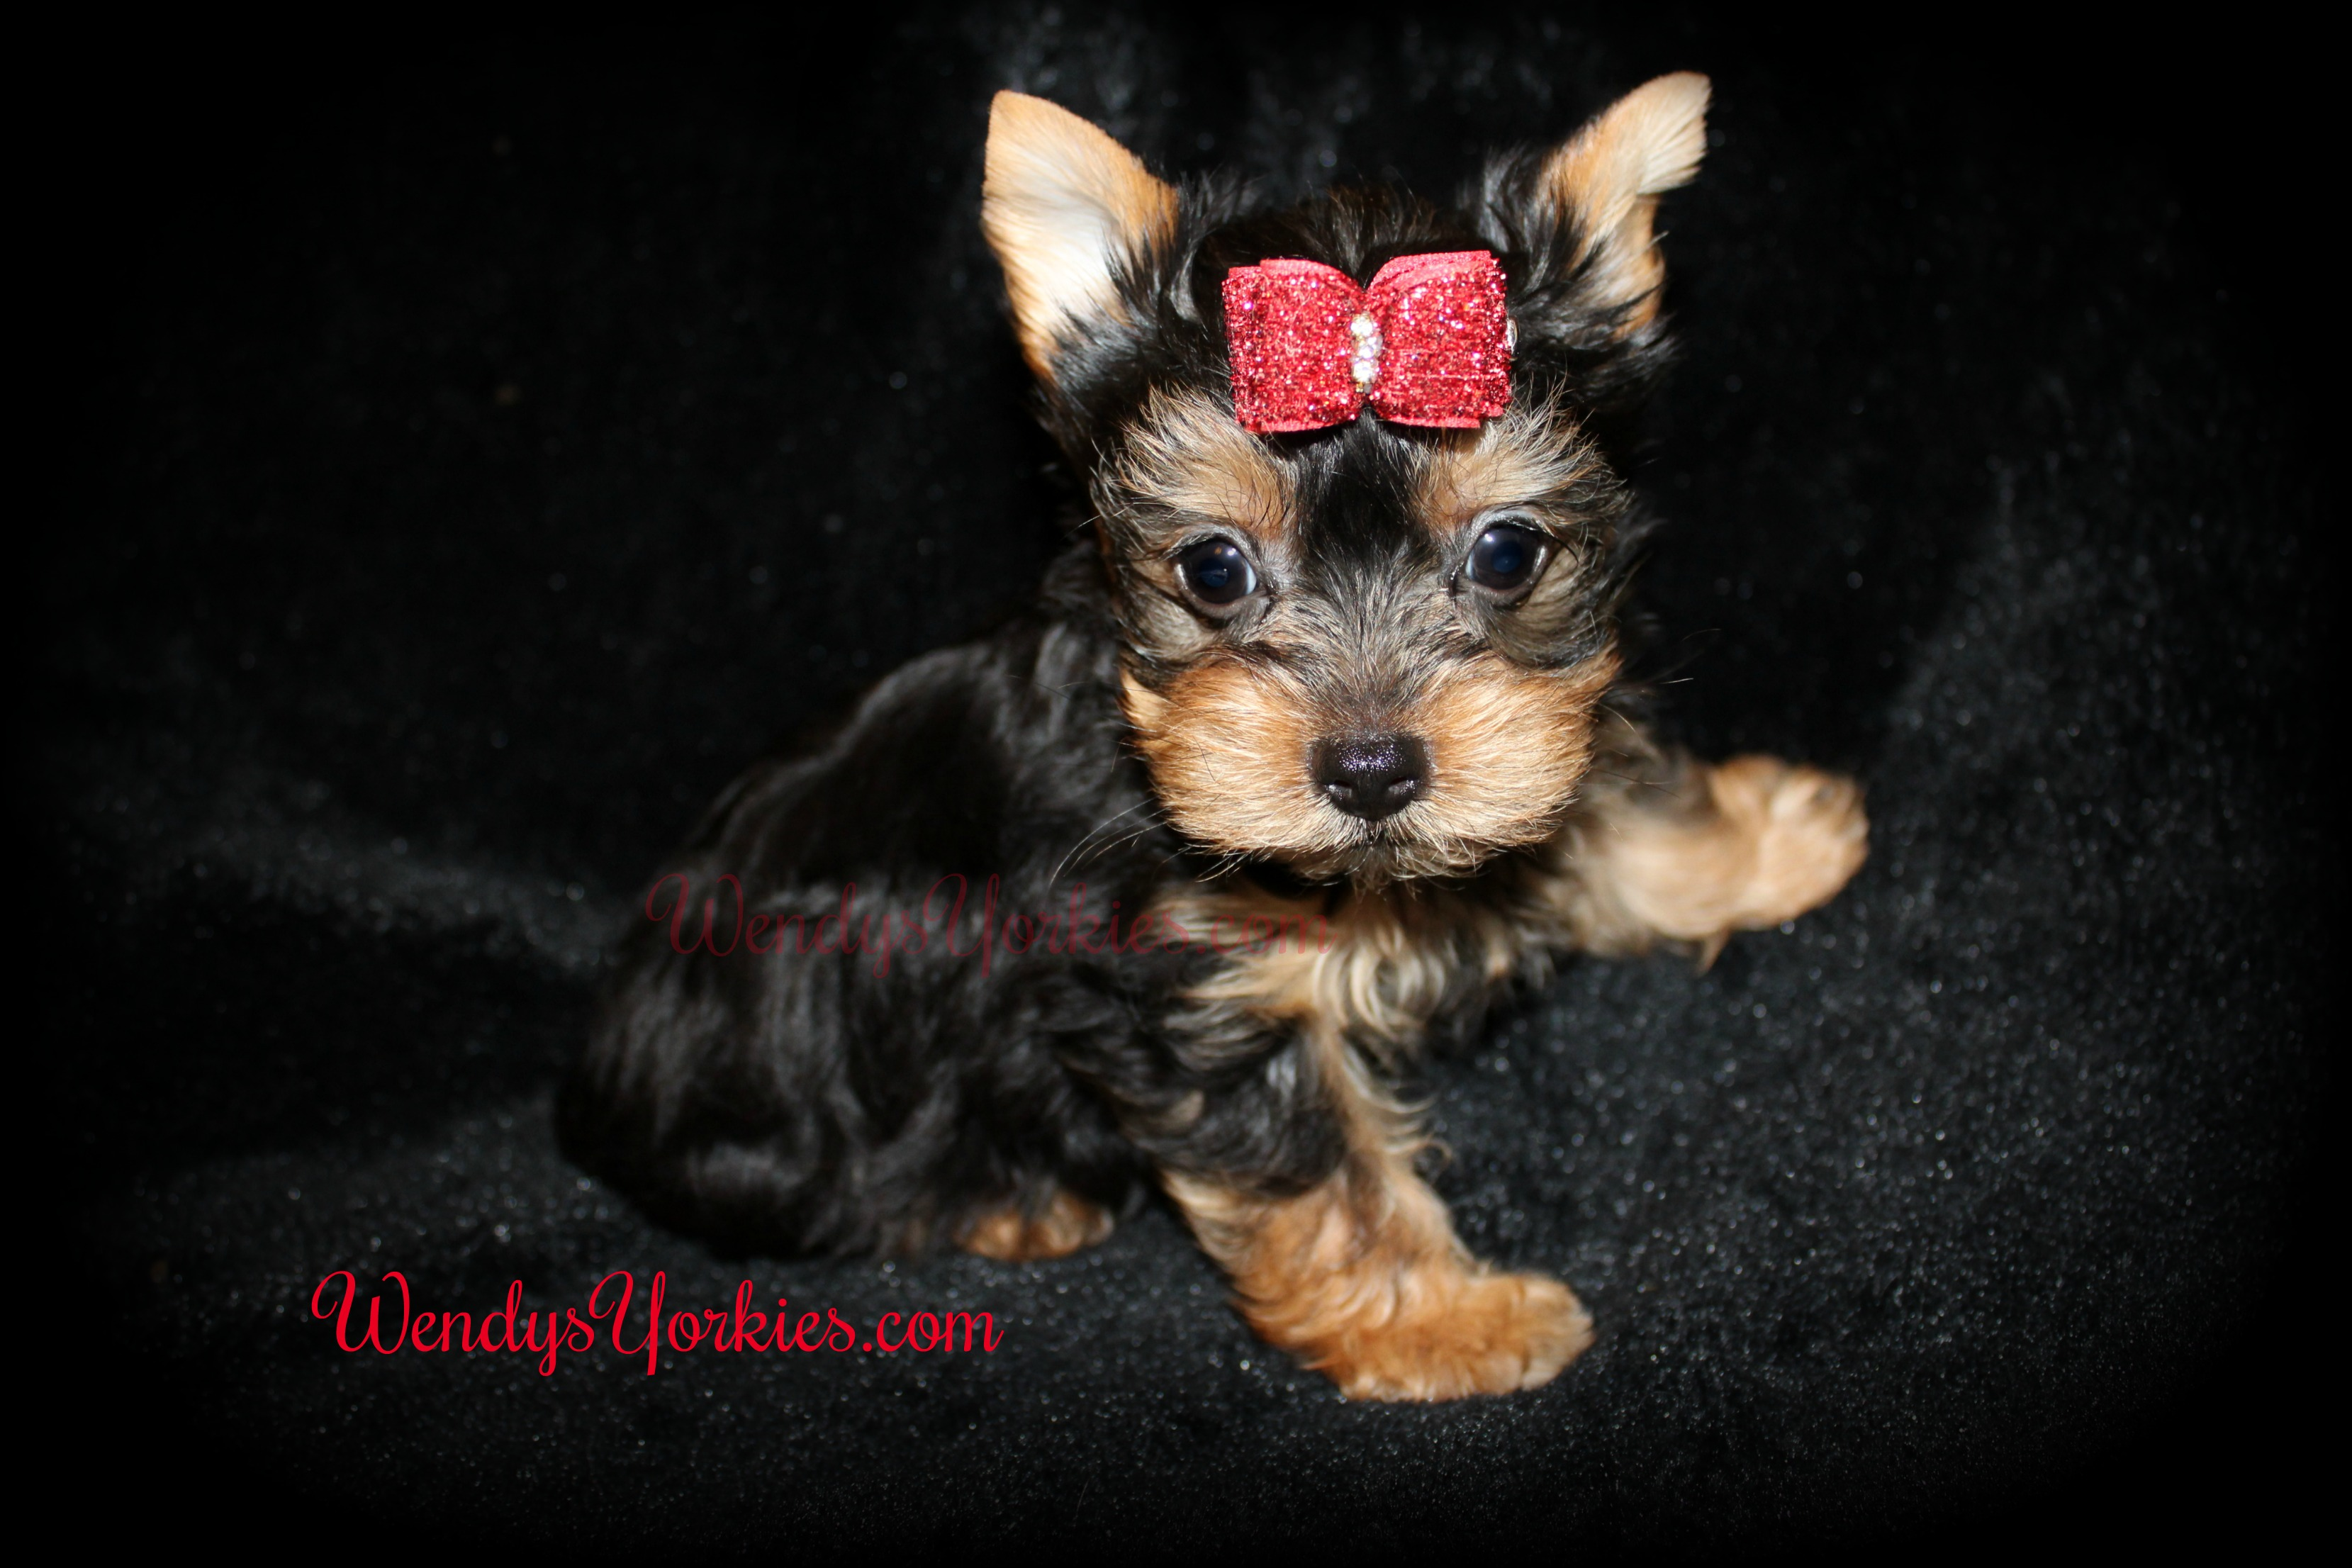 _Teacup Yorkie puppies for sale, Yorkie puppies for sale near me, Texas Yorkie puppies for sale, Anna m3, WendysYorkies.com